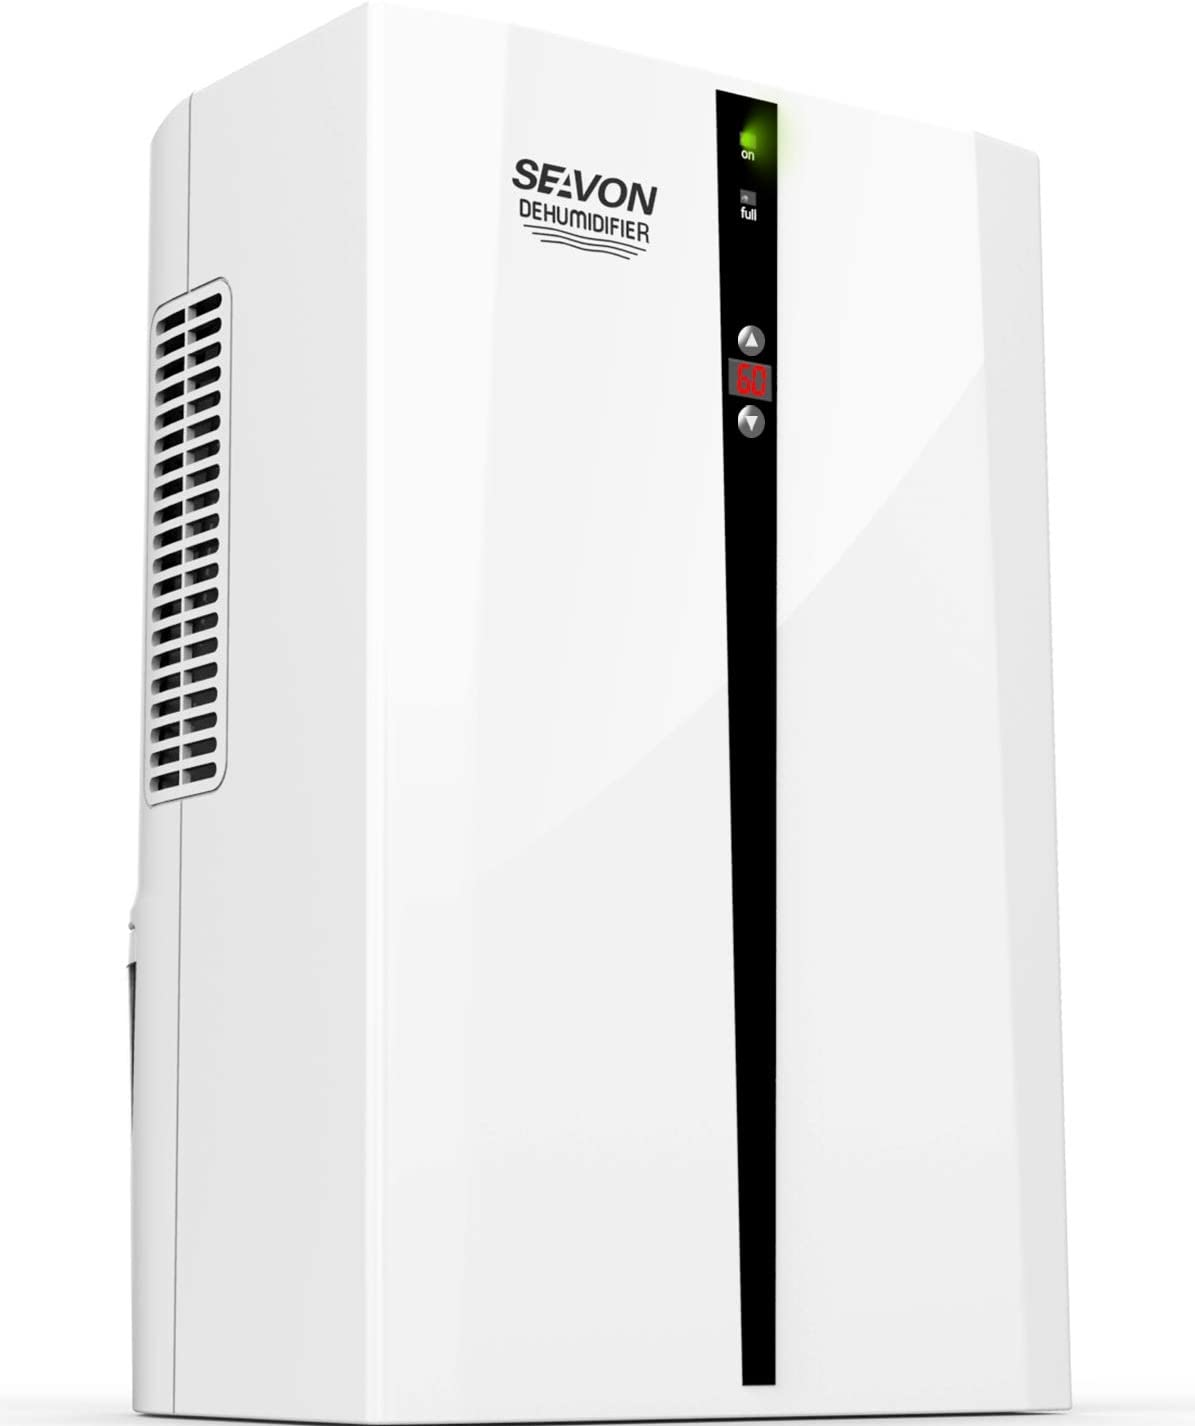 SEAVON Electric Dehumidifier for Home, 2200 Cubic Feet 270 sq ft , Control Humidity, 2000ml 68 oz Capacity, Auto Shut Off, Quiet Safe Dehumidifiers for Bedroom, Bathroom, Basement, Apartment, RV